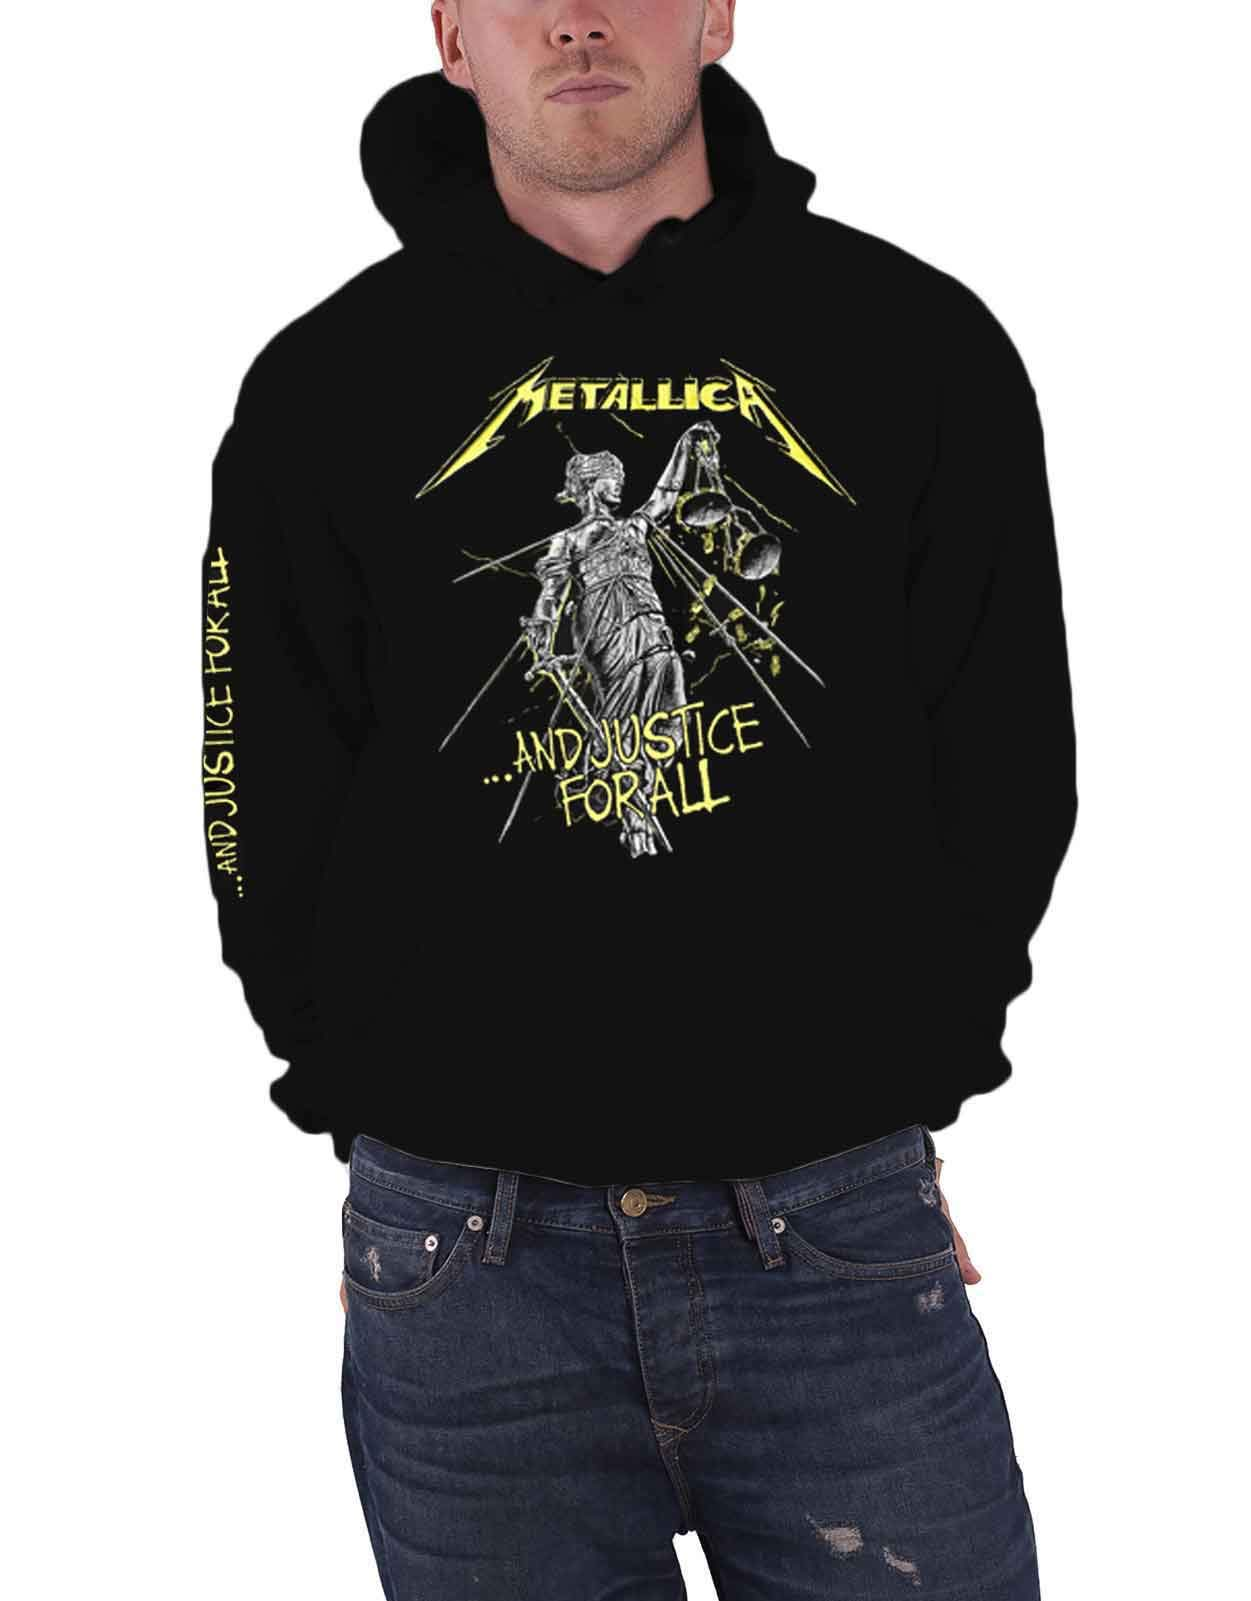 Metallica Hoodie and Justice for All Tracks Official Mens Black Pullover